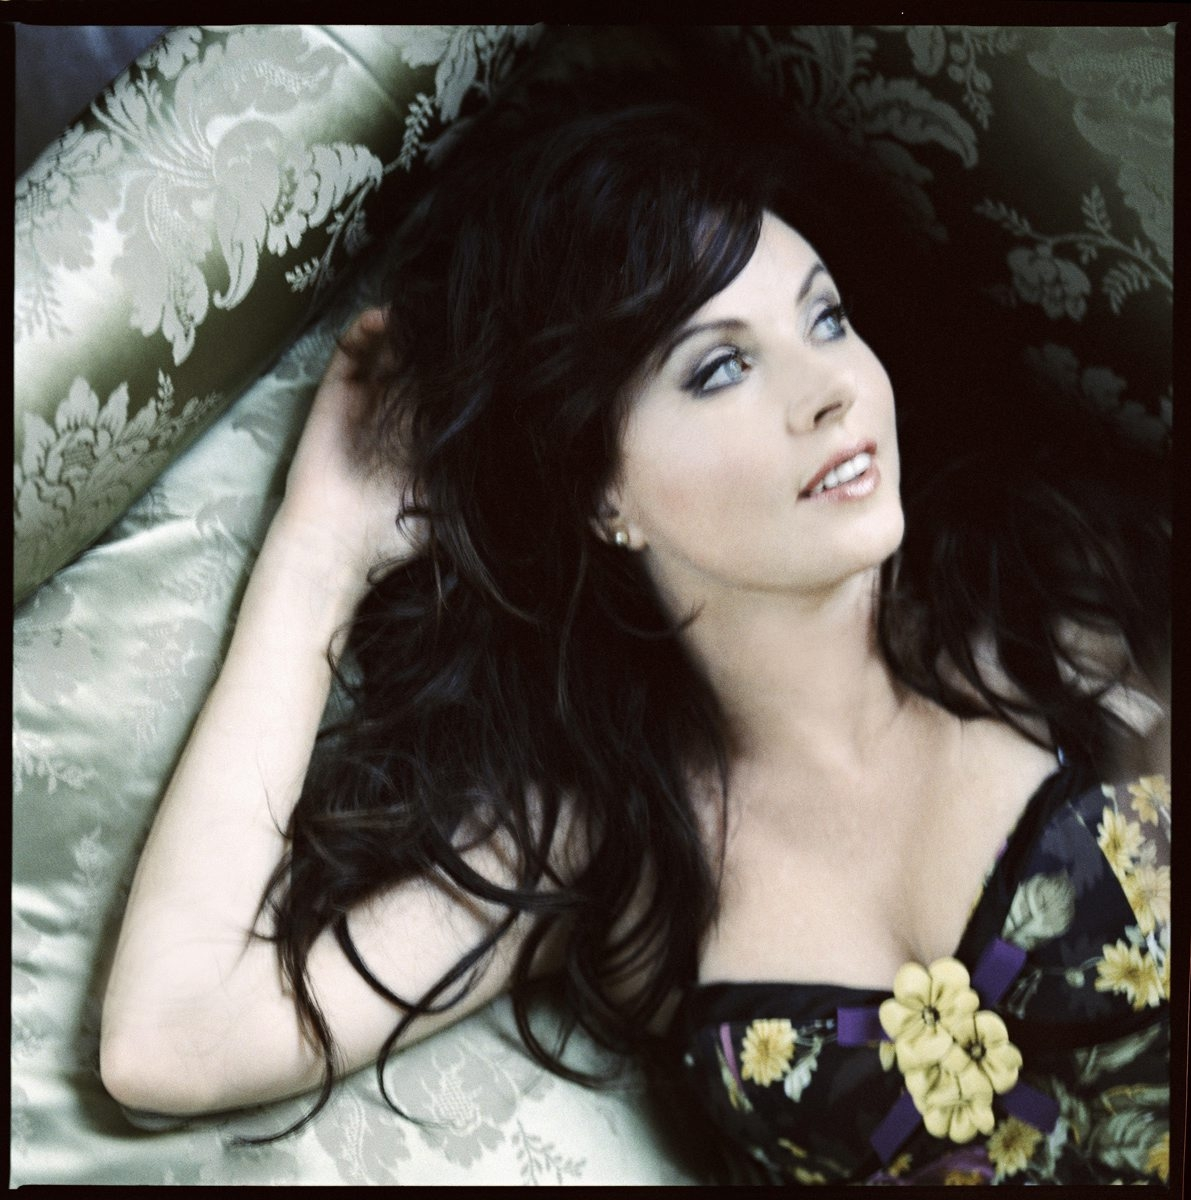 Sarah Brightman performs at 7:30 p.m. Wednesday at the University at Buffalo's Center for the Arts.